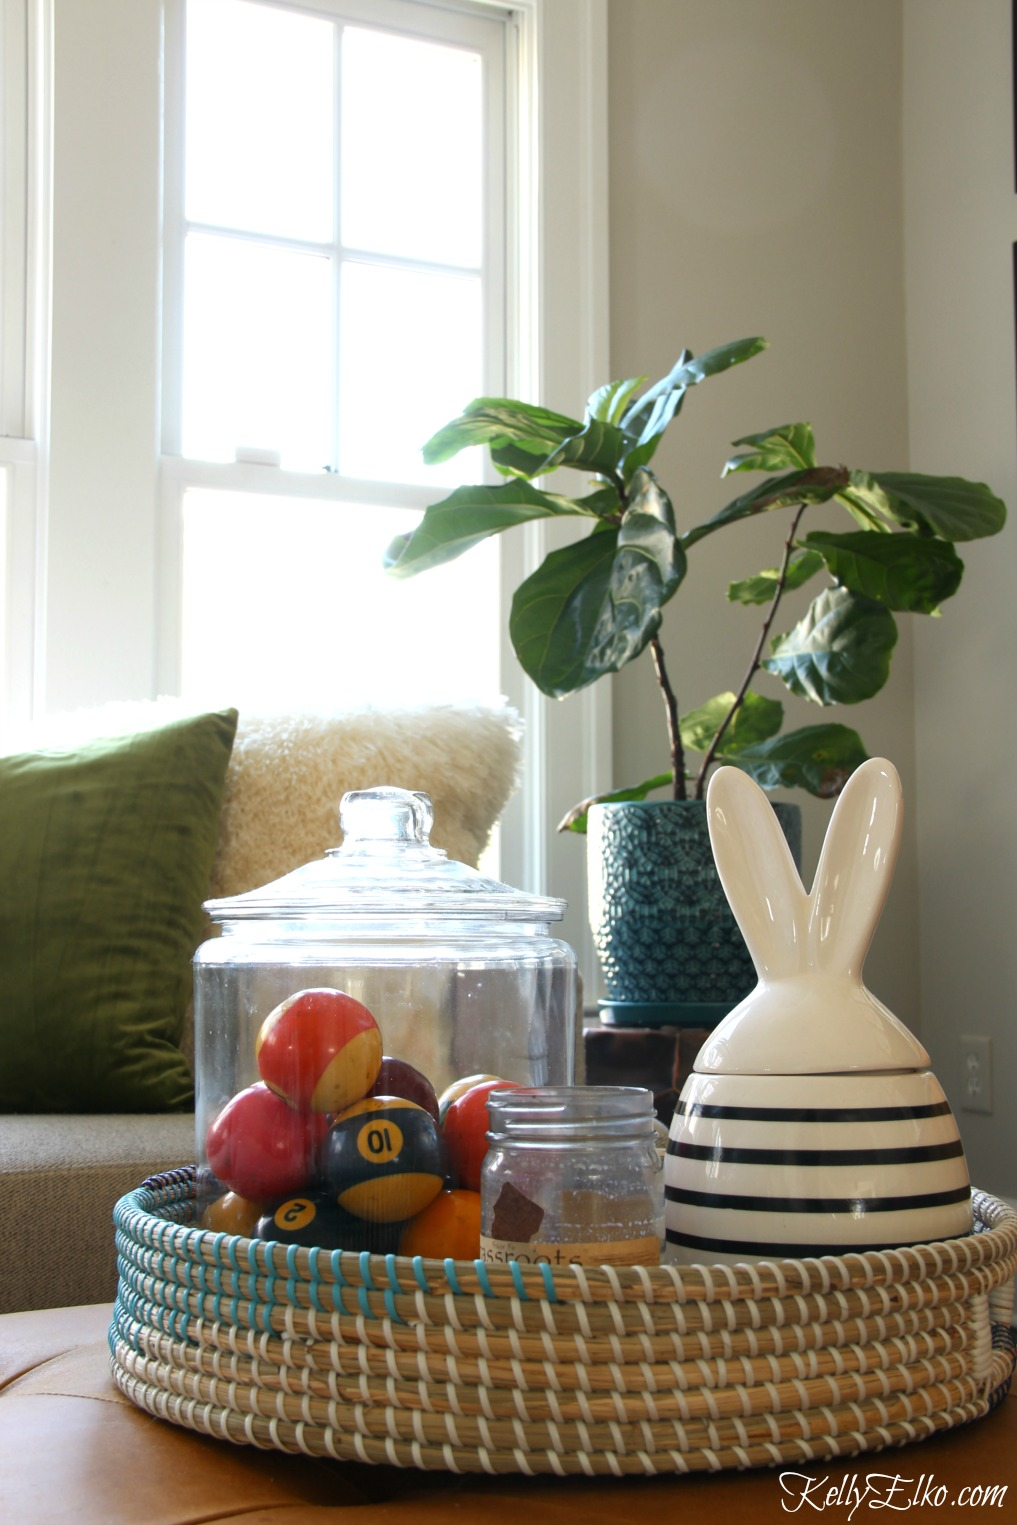 Love this spring family room and the cute woven basket filled with vintage pool balls and a modern bunny jar kellyelko.com #springdecor #homedecor #vintagedecor #bunny